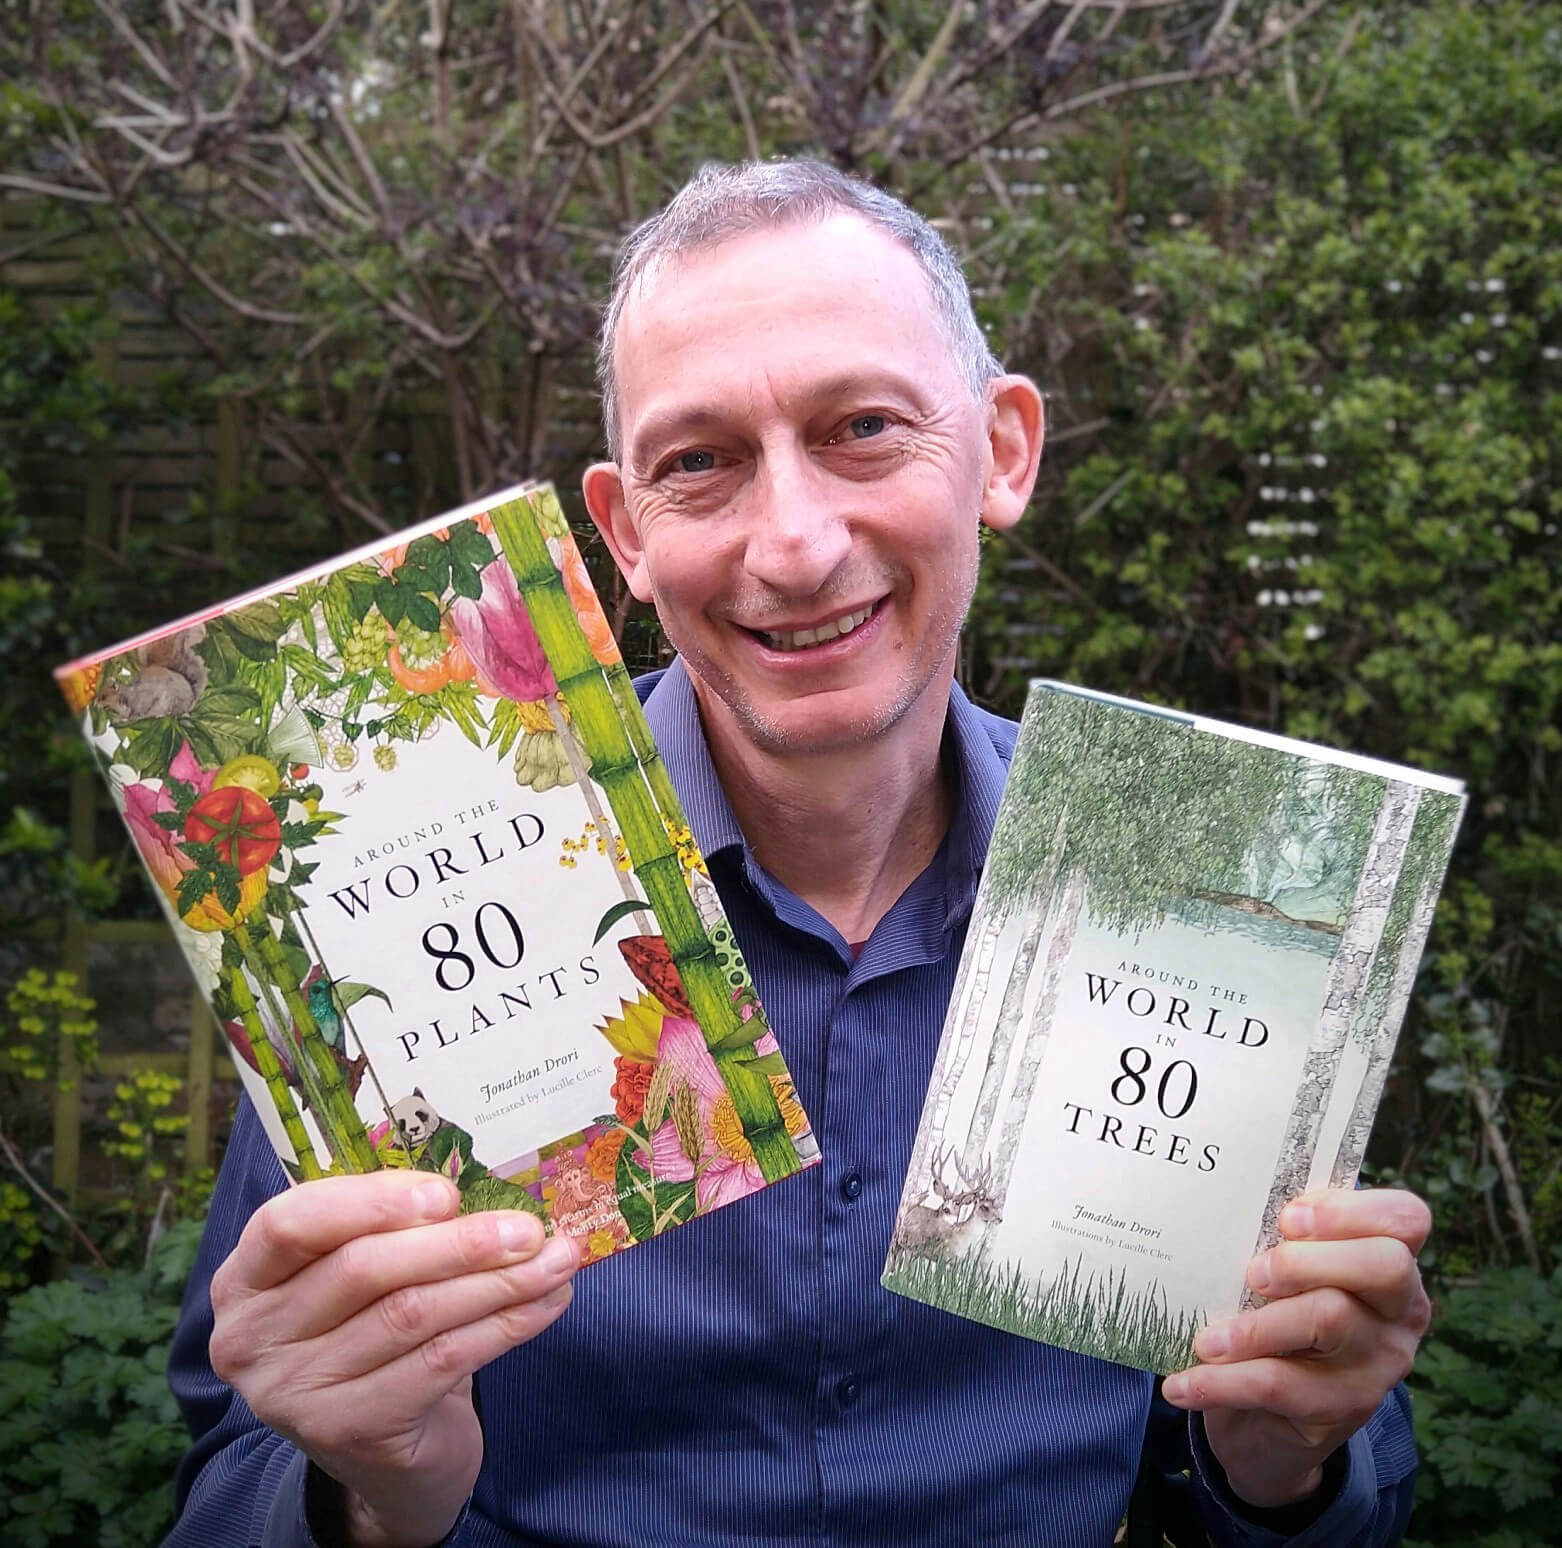 Plant enthusiast and author Jonathan Drori smiling and holding his books Around the World in 80 Trees and Around the World in 80 Plants